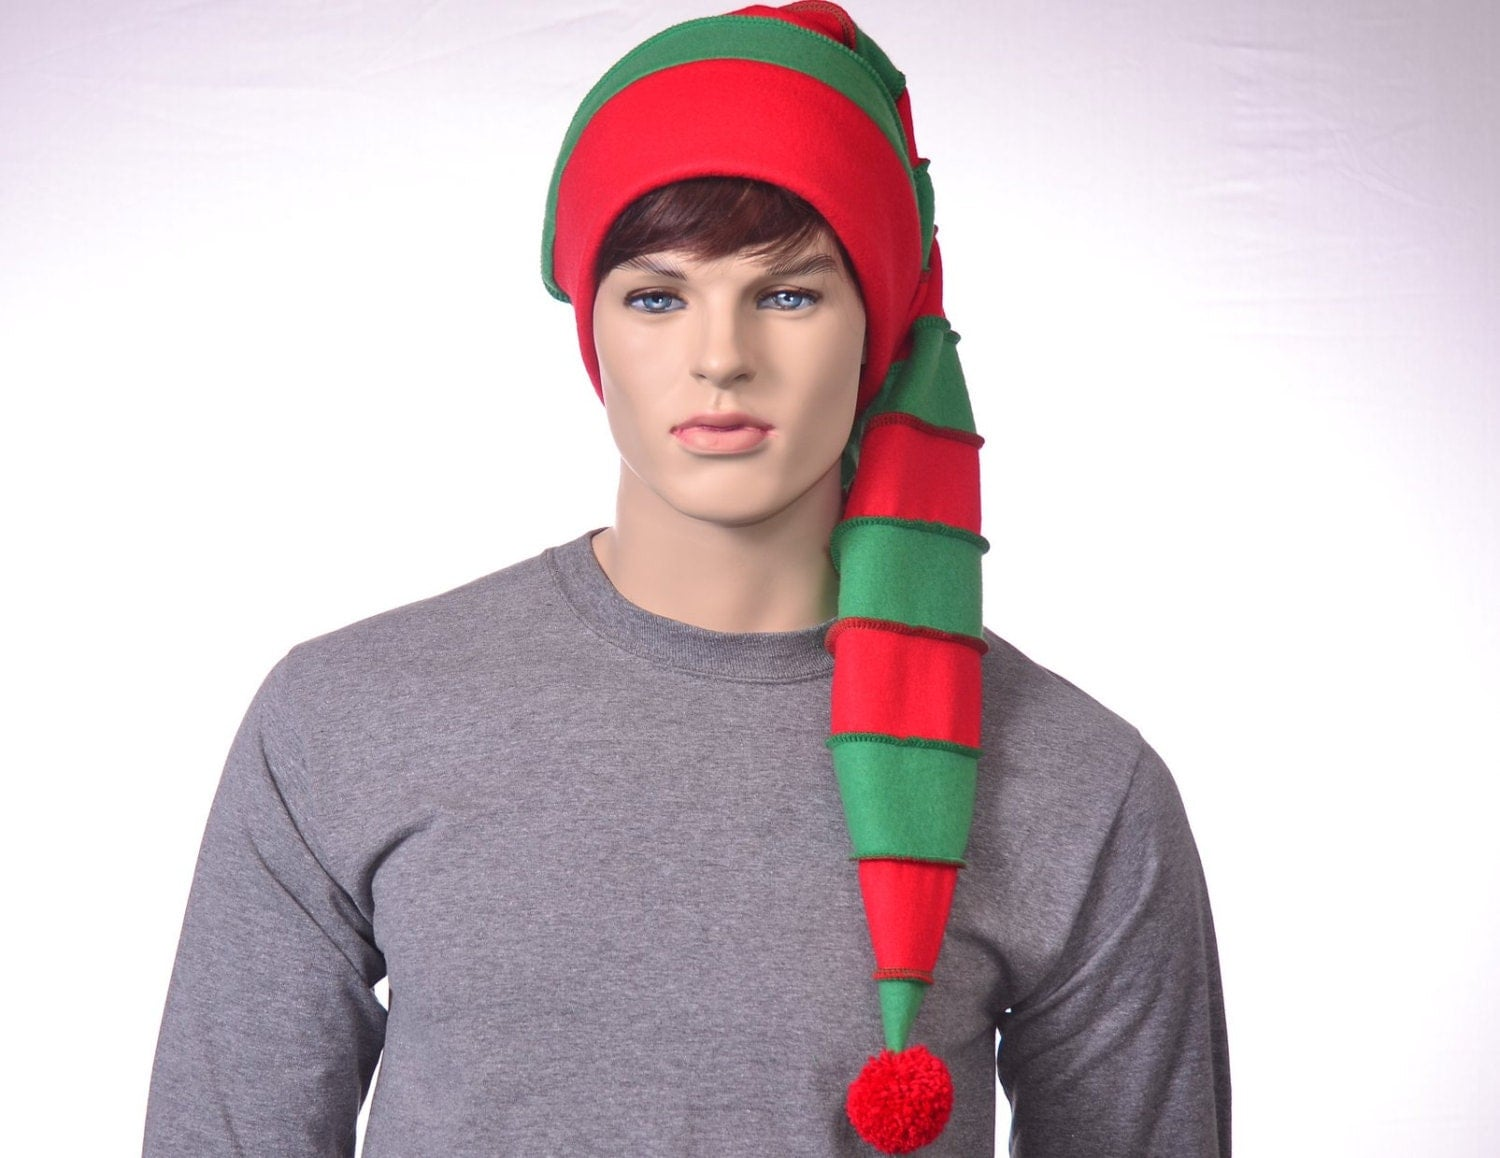 Define stocking cap. stocking cap synonyms, stocking cap pronunciation, stocking cap translation, English dictionary definition of stocking cap. n. A close-fitting knitted cap that resembles a stocking and often has a long tapering tail with a tassel attached. n a conical knitted cap, often with a.